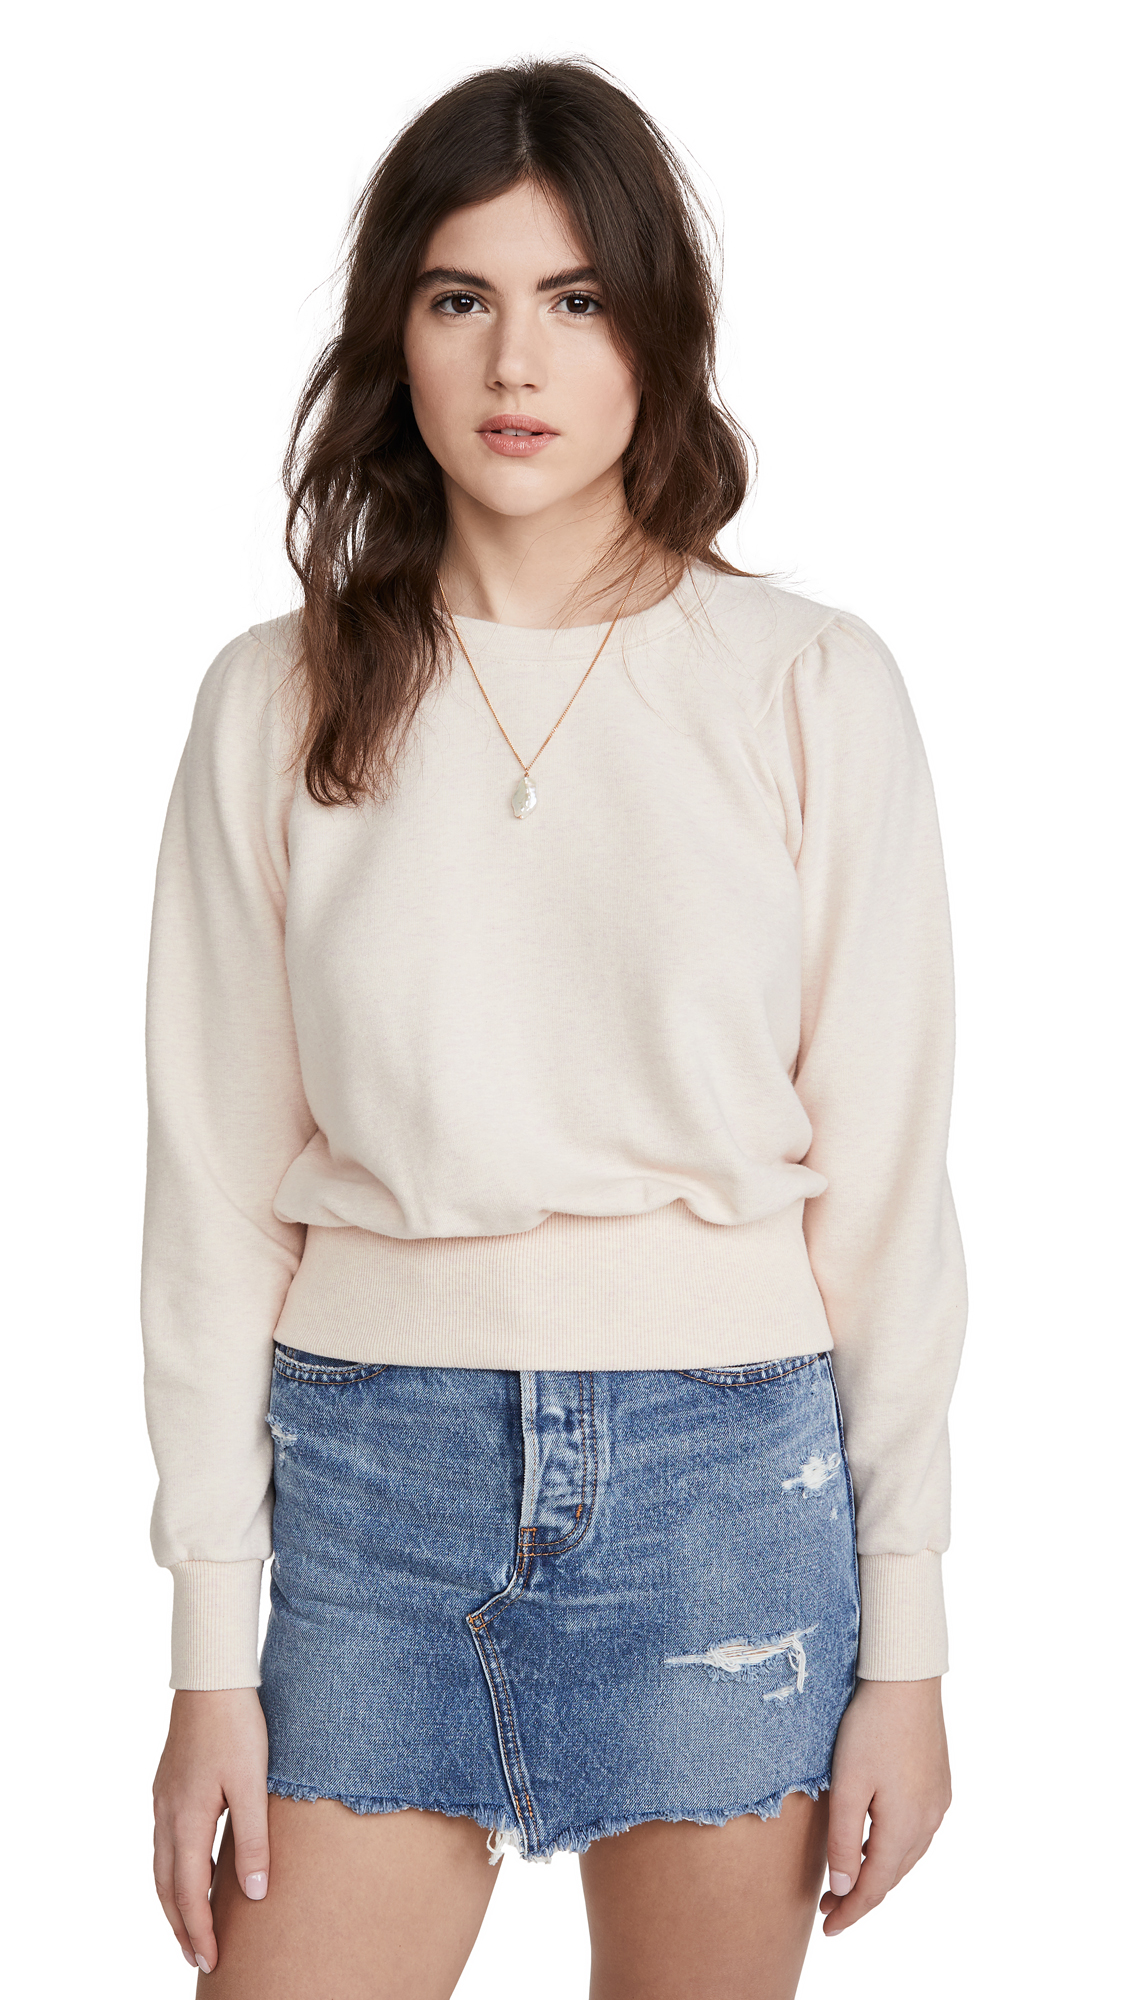 Photo of Madewell Heathered Puff Sleeve Raglan Sweatshirt - shop Madewell Clothing, Shirts, Tops online